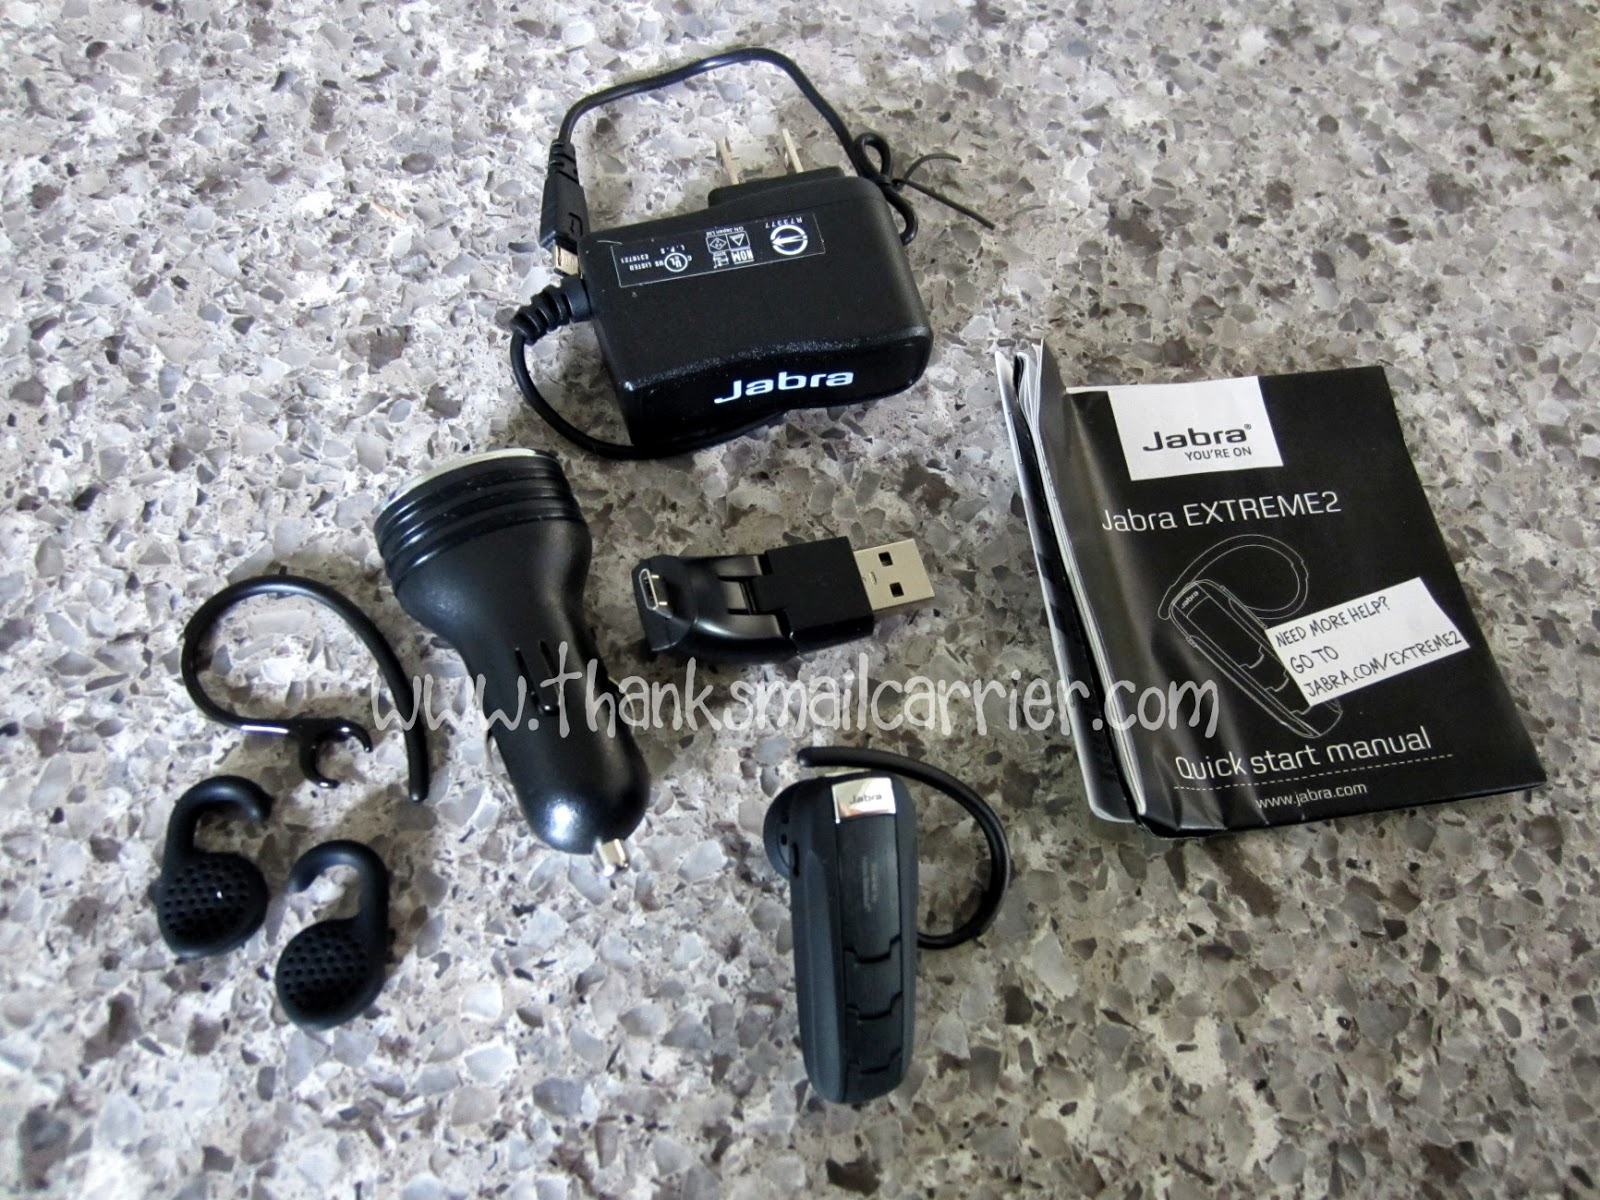 Jabra extreme2 headset pieces